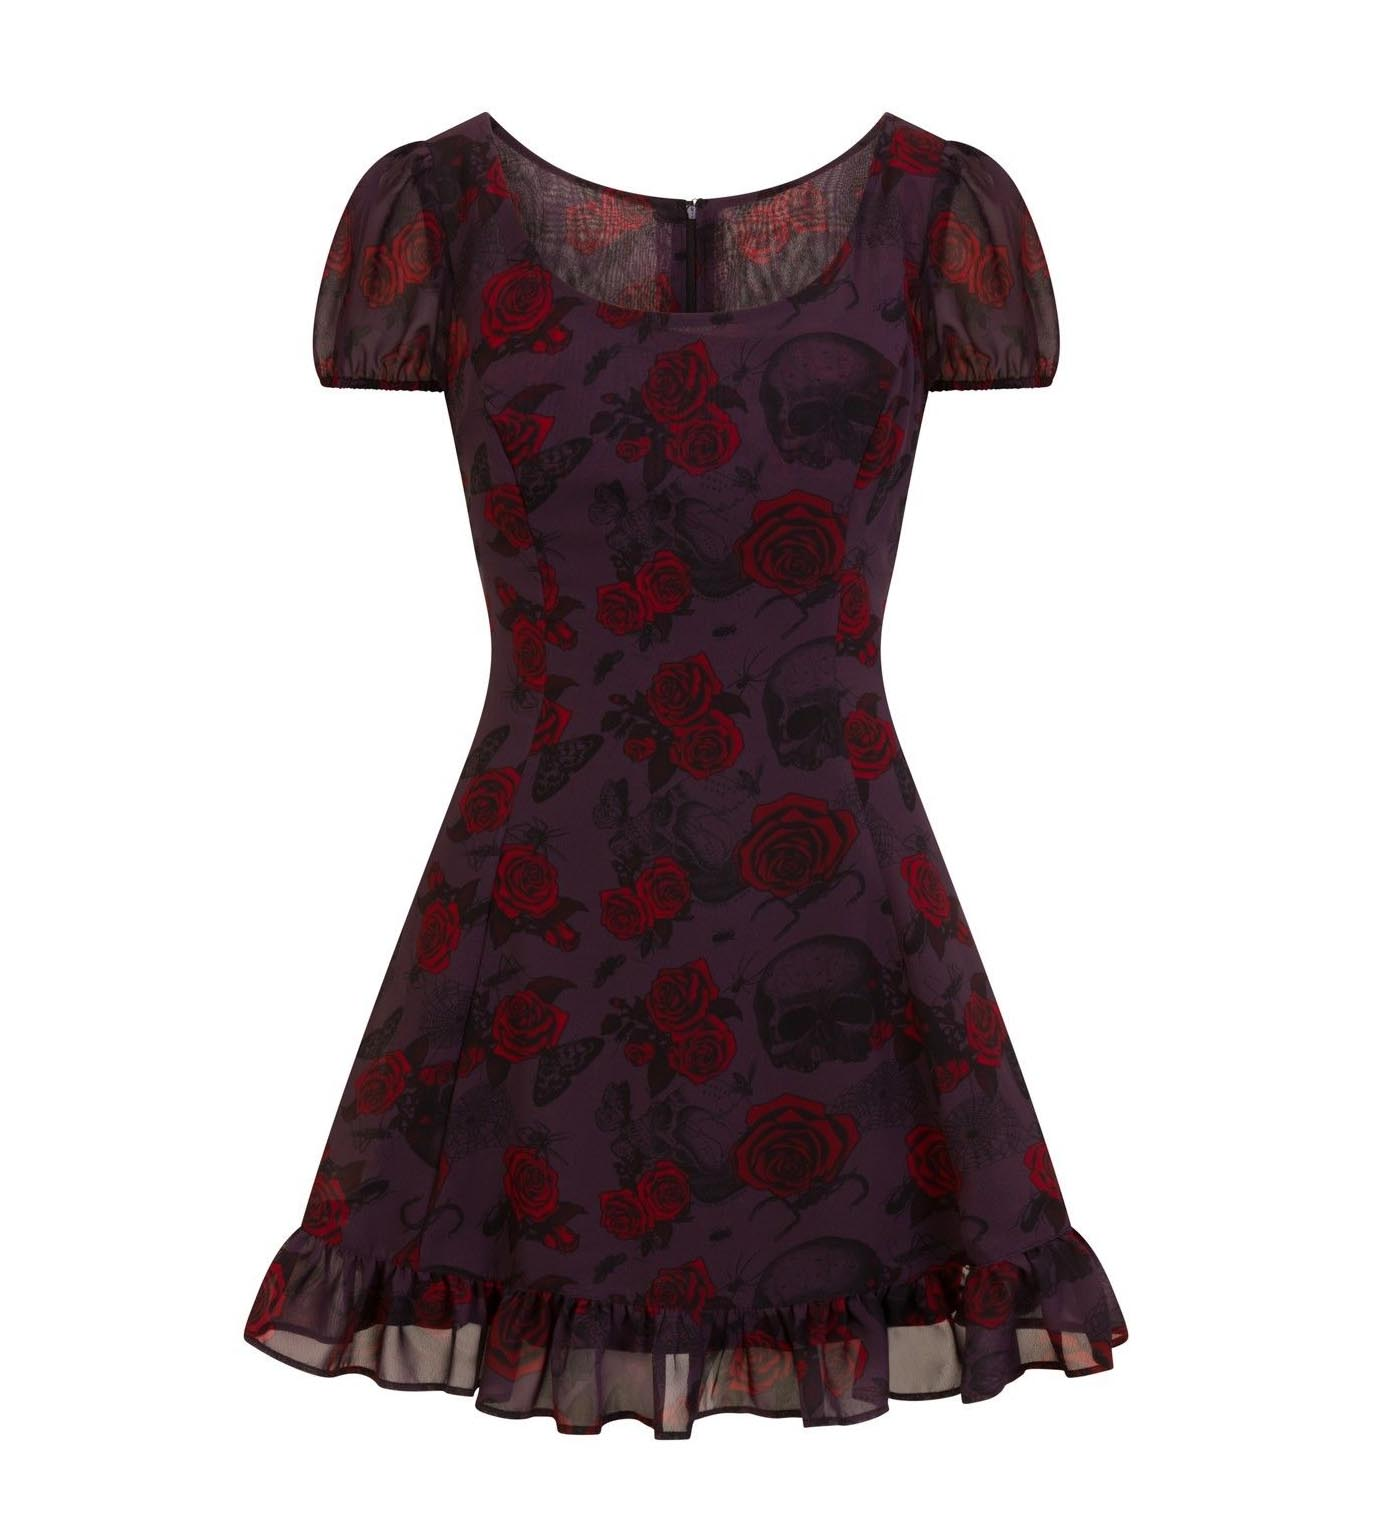 Hell-Bunny-Goth-Floaty-Mini-Dress-BUGS-amp-ROSES-Skulls-Butterfly-Purple-All-Sizes thumbnail 5